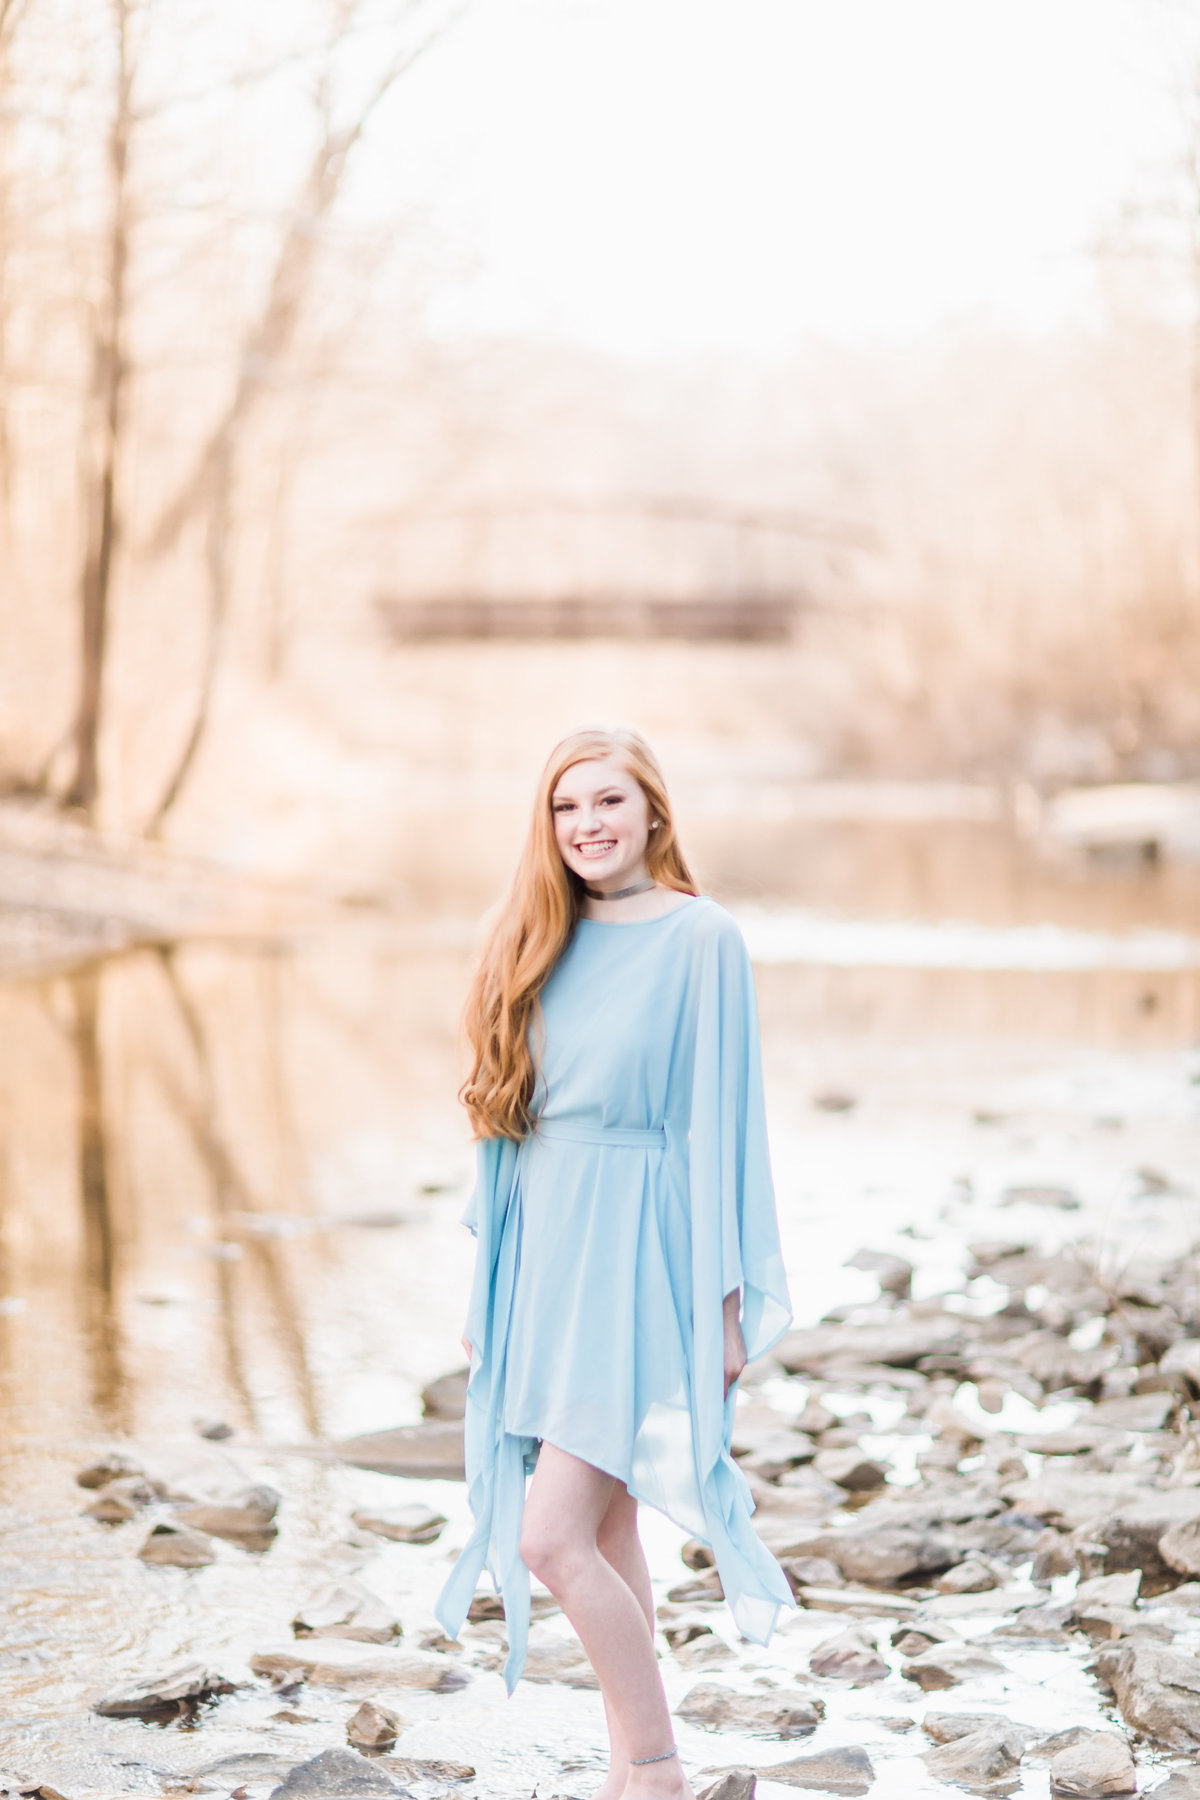 SeniorPortraits_ColumbiaMissouri_Daylin_CatherineRhodesPhotography-60